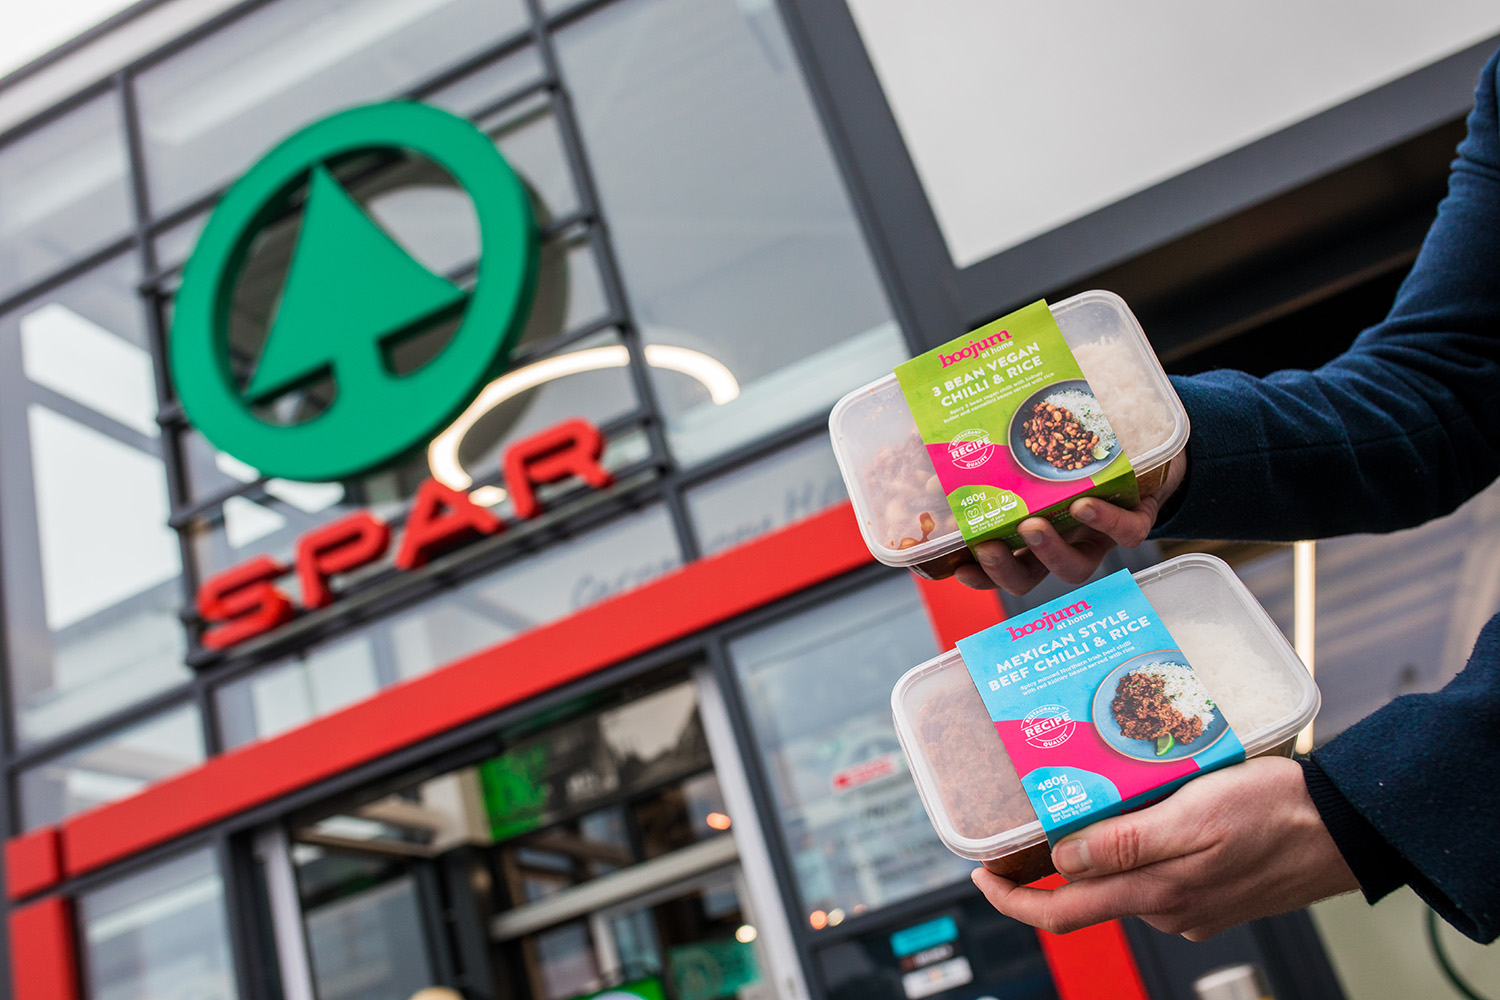 Innovating Through The Pandemic – Boojum Launches New Ready Meal Range With Henderson Group